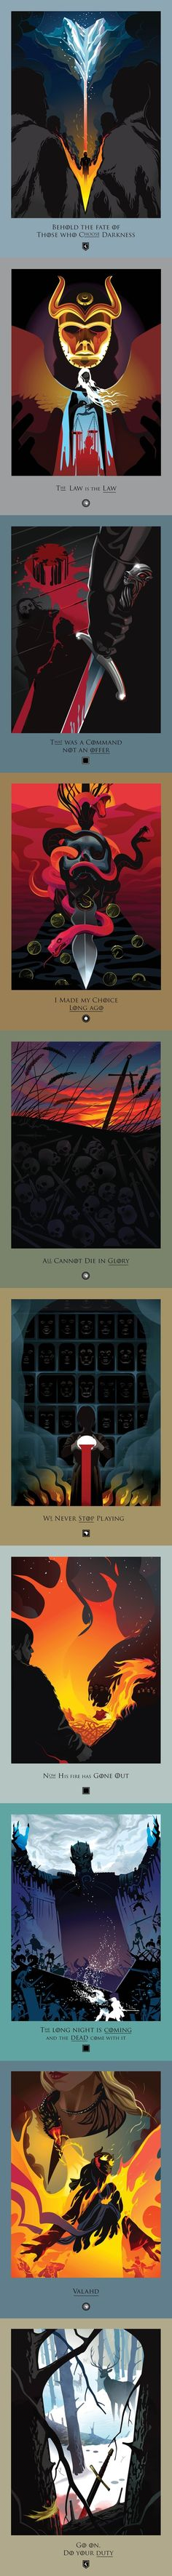 Beautiful deaths: Game of Thrones: Season 5 Chapters: 1-10 by Robert M. Ball.